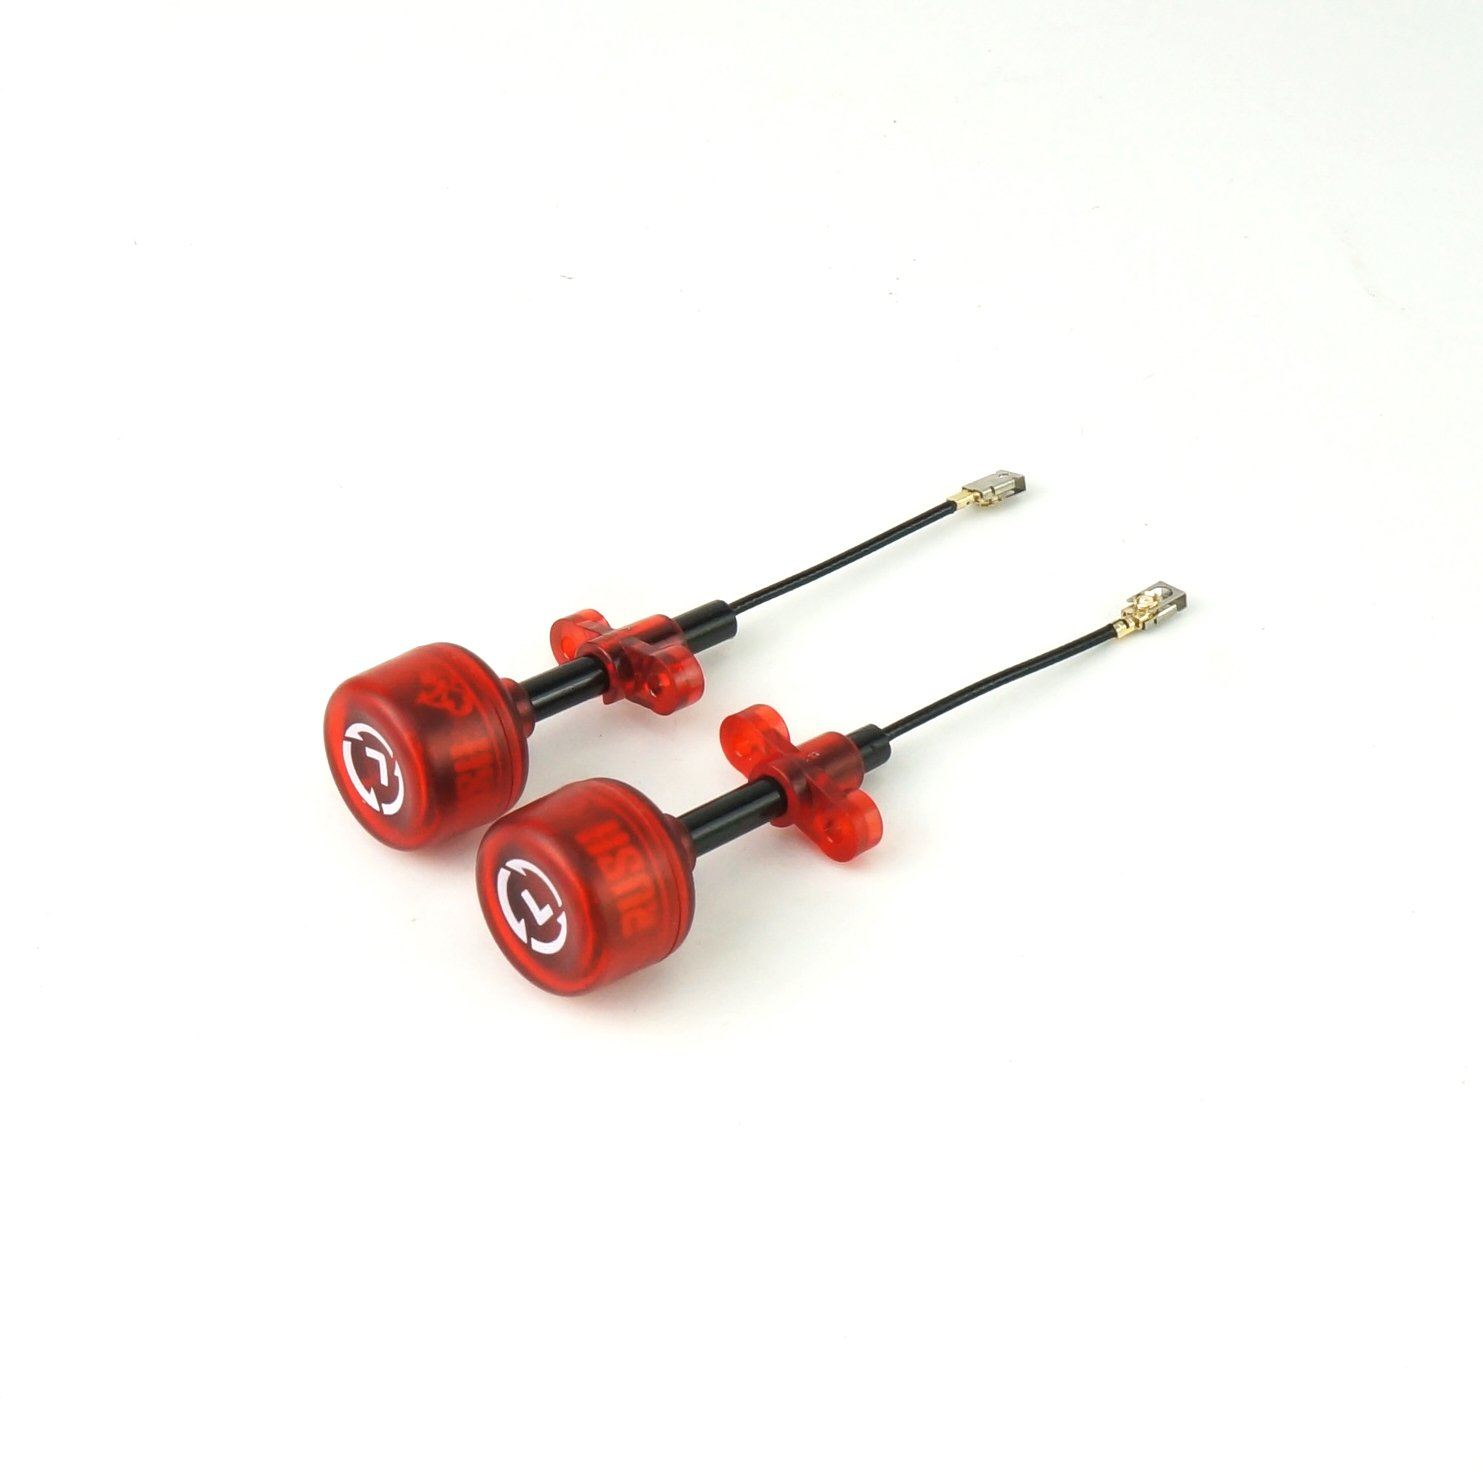 RushFPV Cherry Antenna 5.8Ghz RushFPV